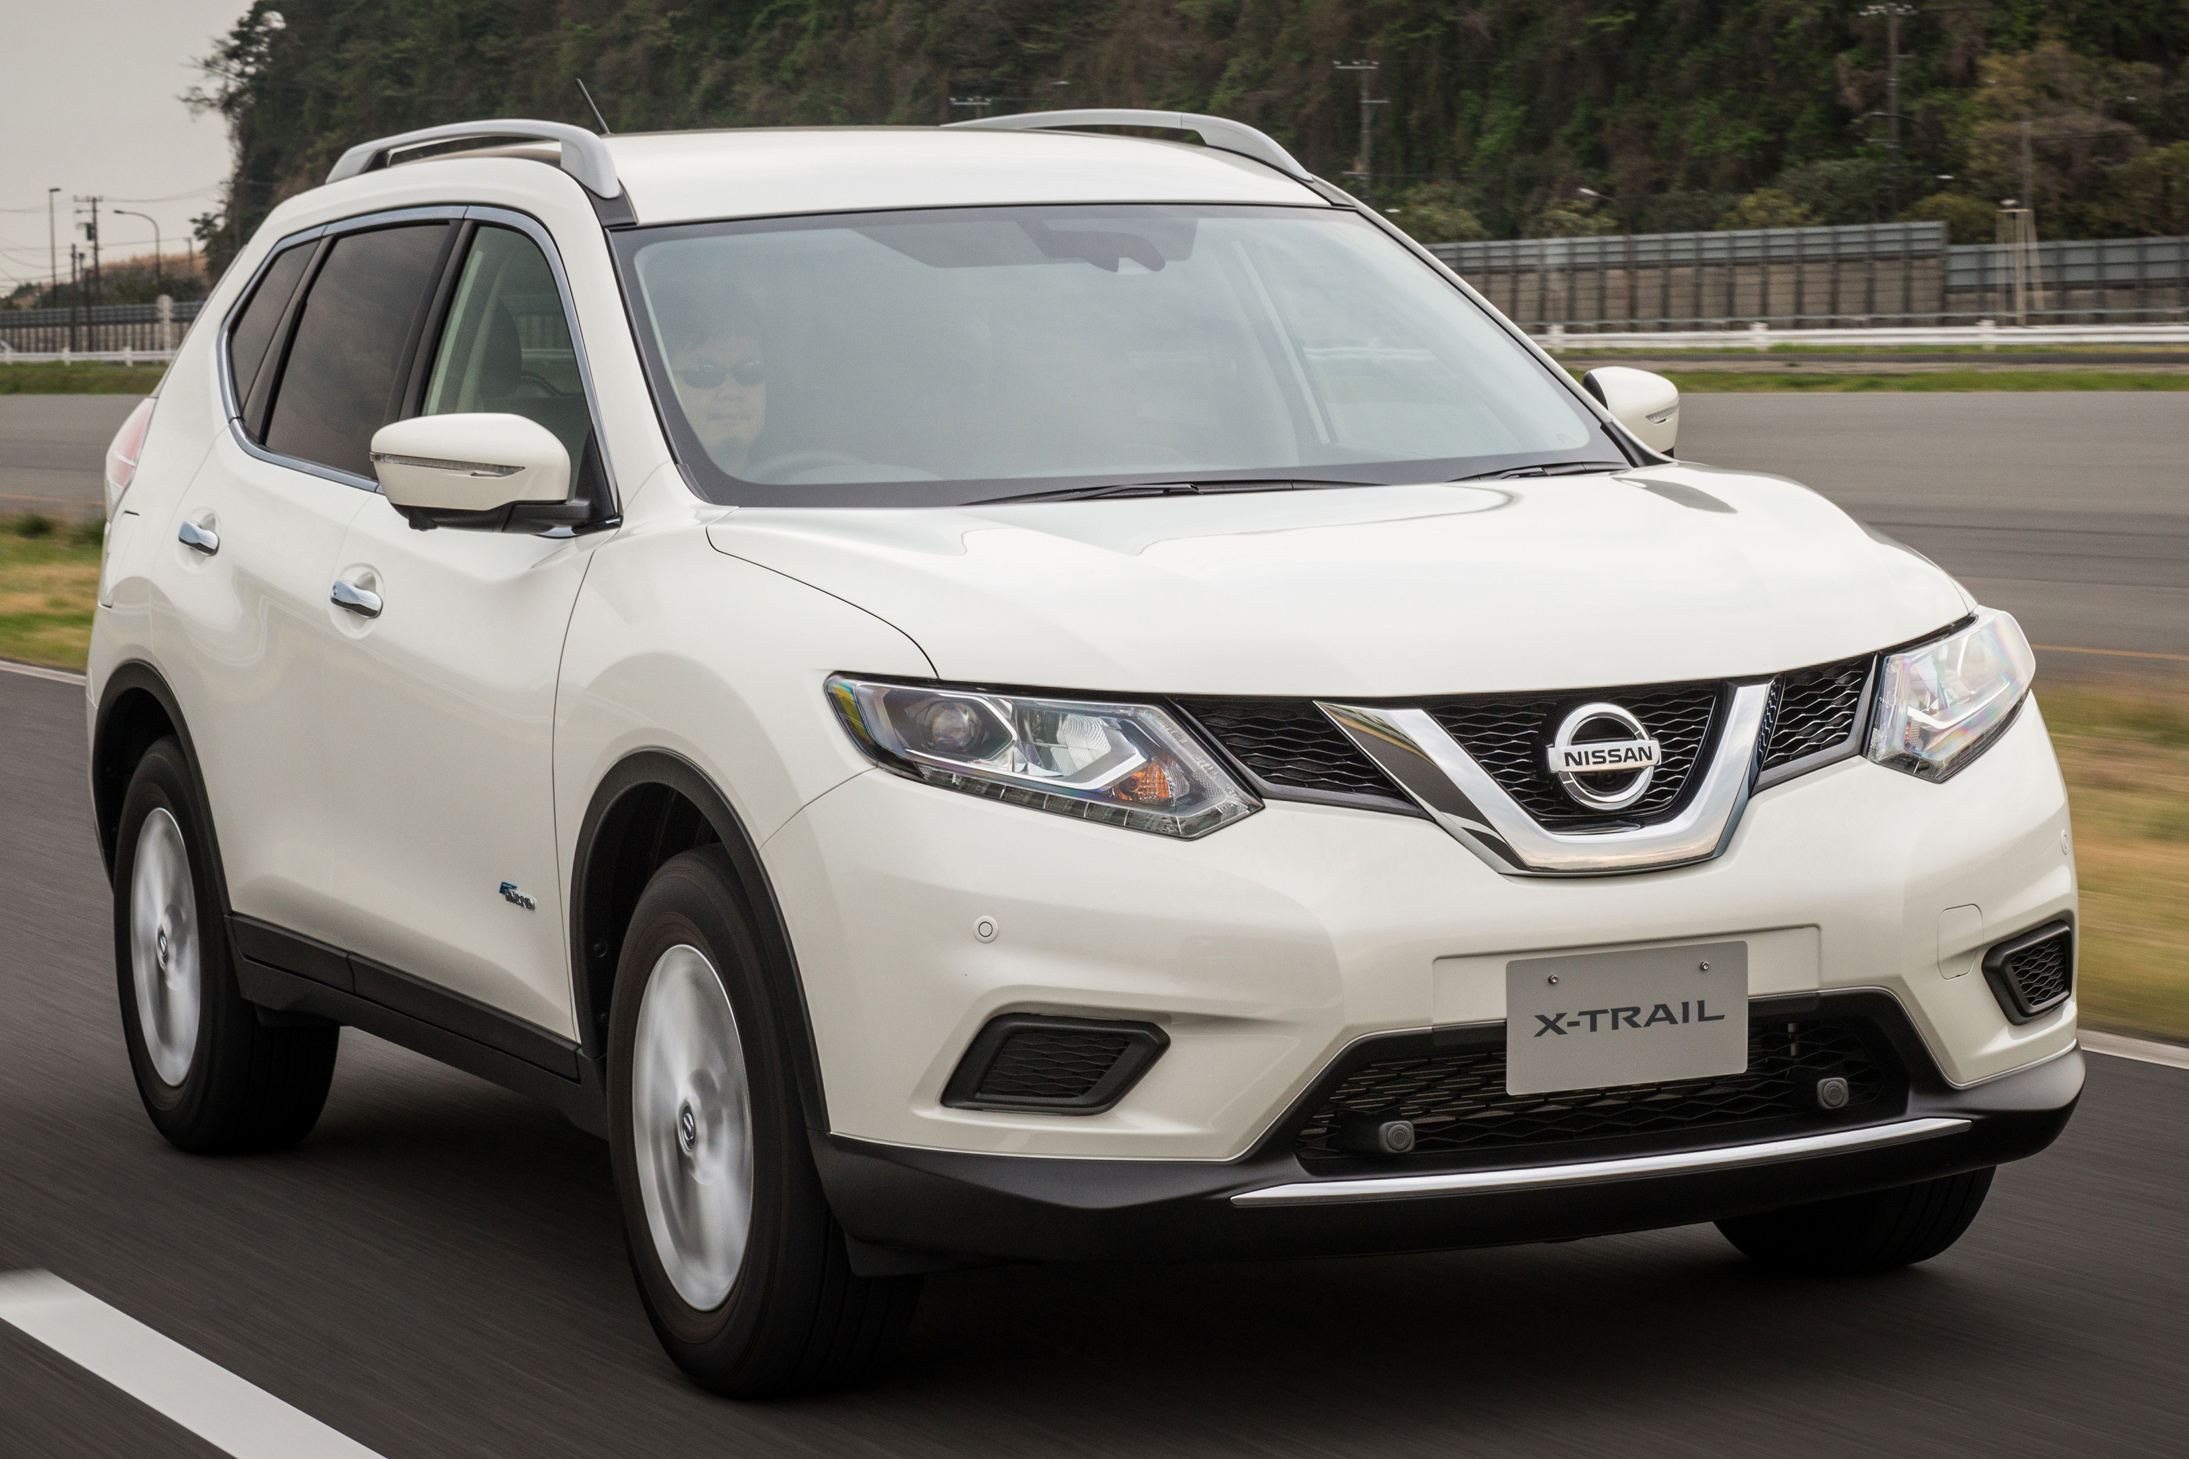 nissan x trail hybrid for japan 2 0 litre 20 6 km l image 326062. Black Bedroom Furniture Sets. Home Design Ideas